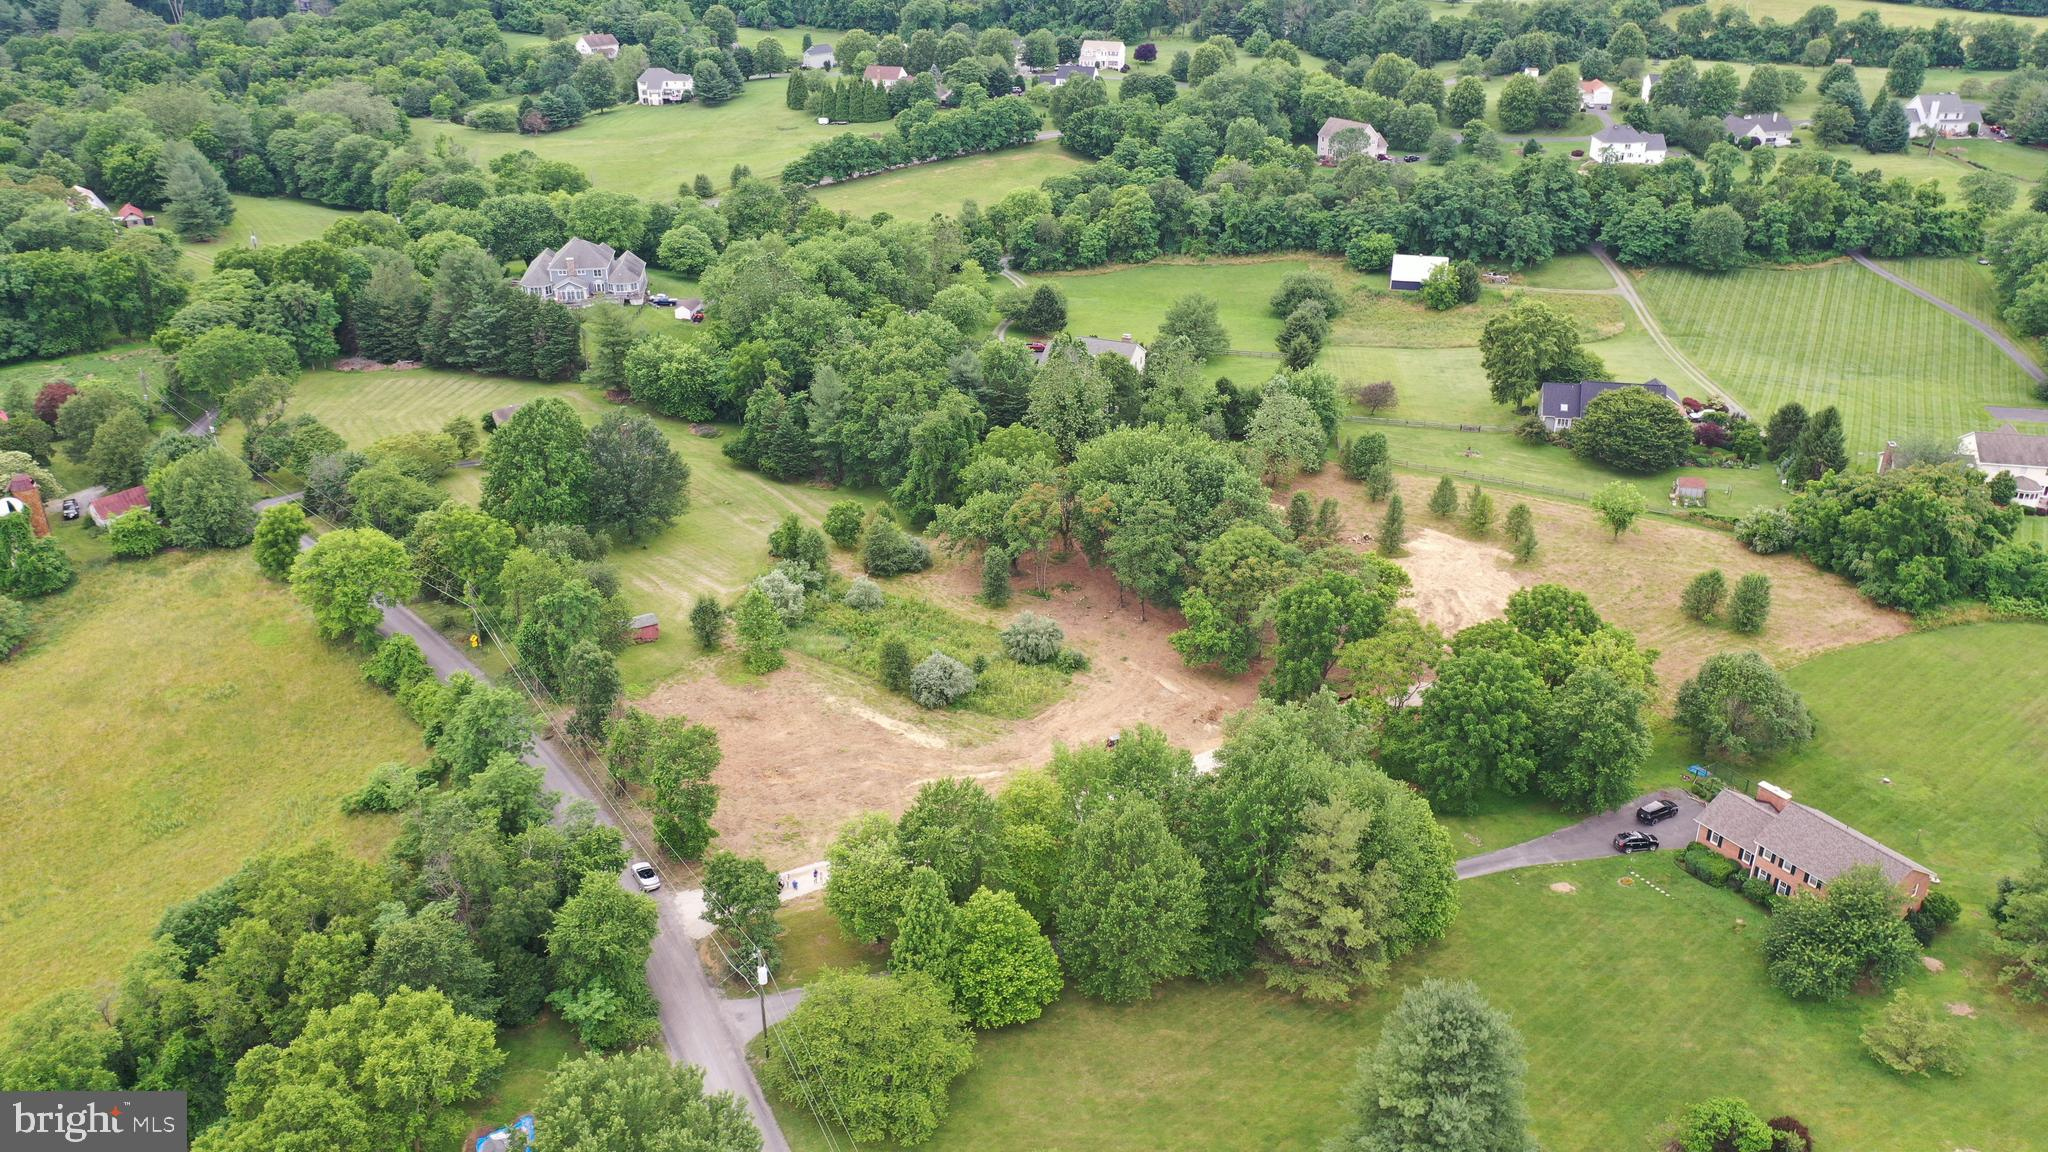 Build your forever home on this beautiful and rare 3 acre lot, approximately 2 miles from town, partially wooded with gorgeous sunset mountain views!  Serene, park-like setting with portions of the lot containing mature trees, remainder of site groomed, including house location site.  Gravel driveway installed.  High speed internet and cable TV available, installed well, 4 bedroom septic perc approval (2 drain field locations available).   All property corners and main drain field location are clearly marked.  This lot is ready to go!